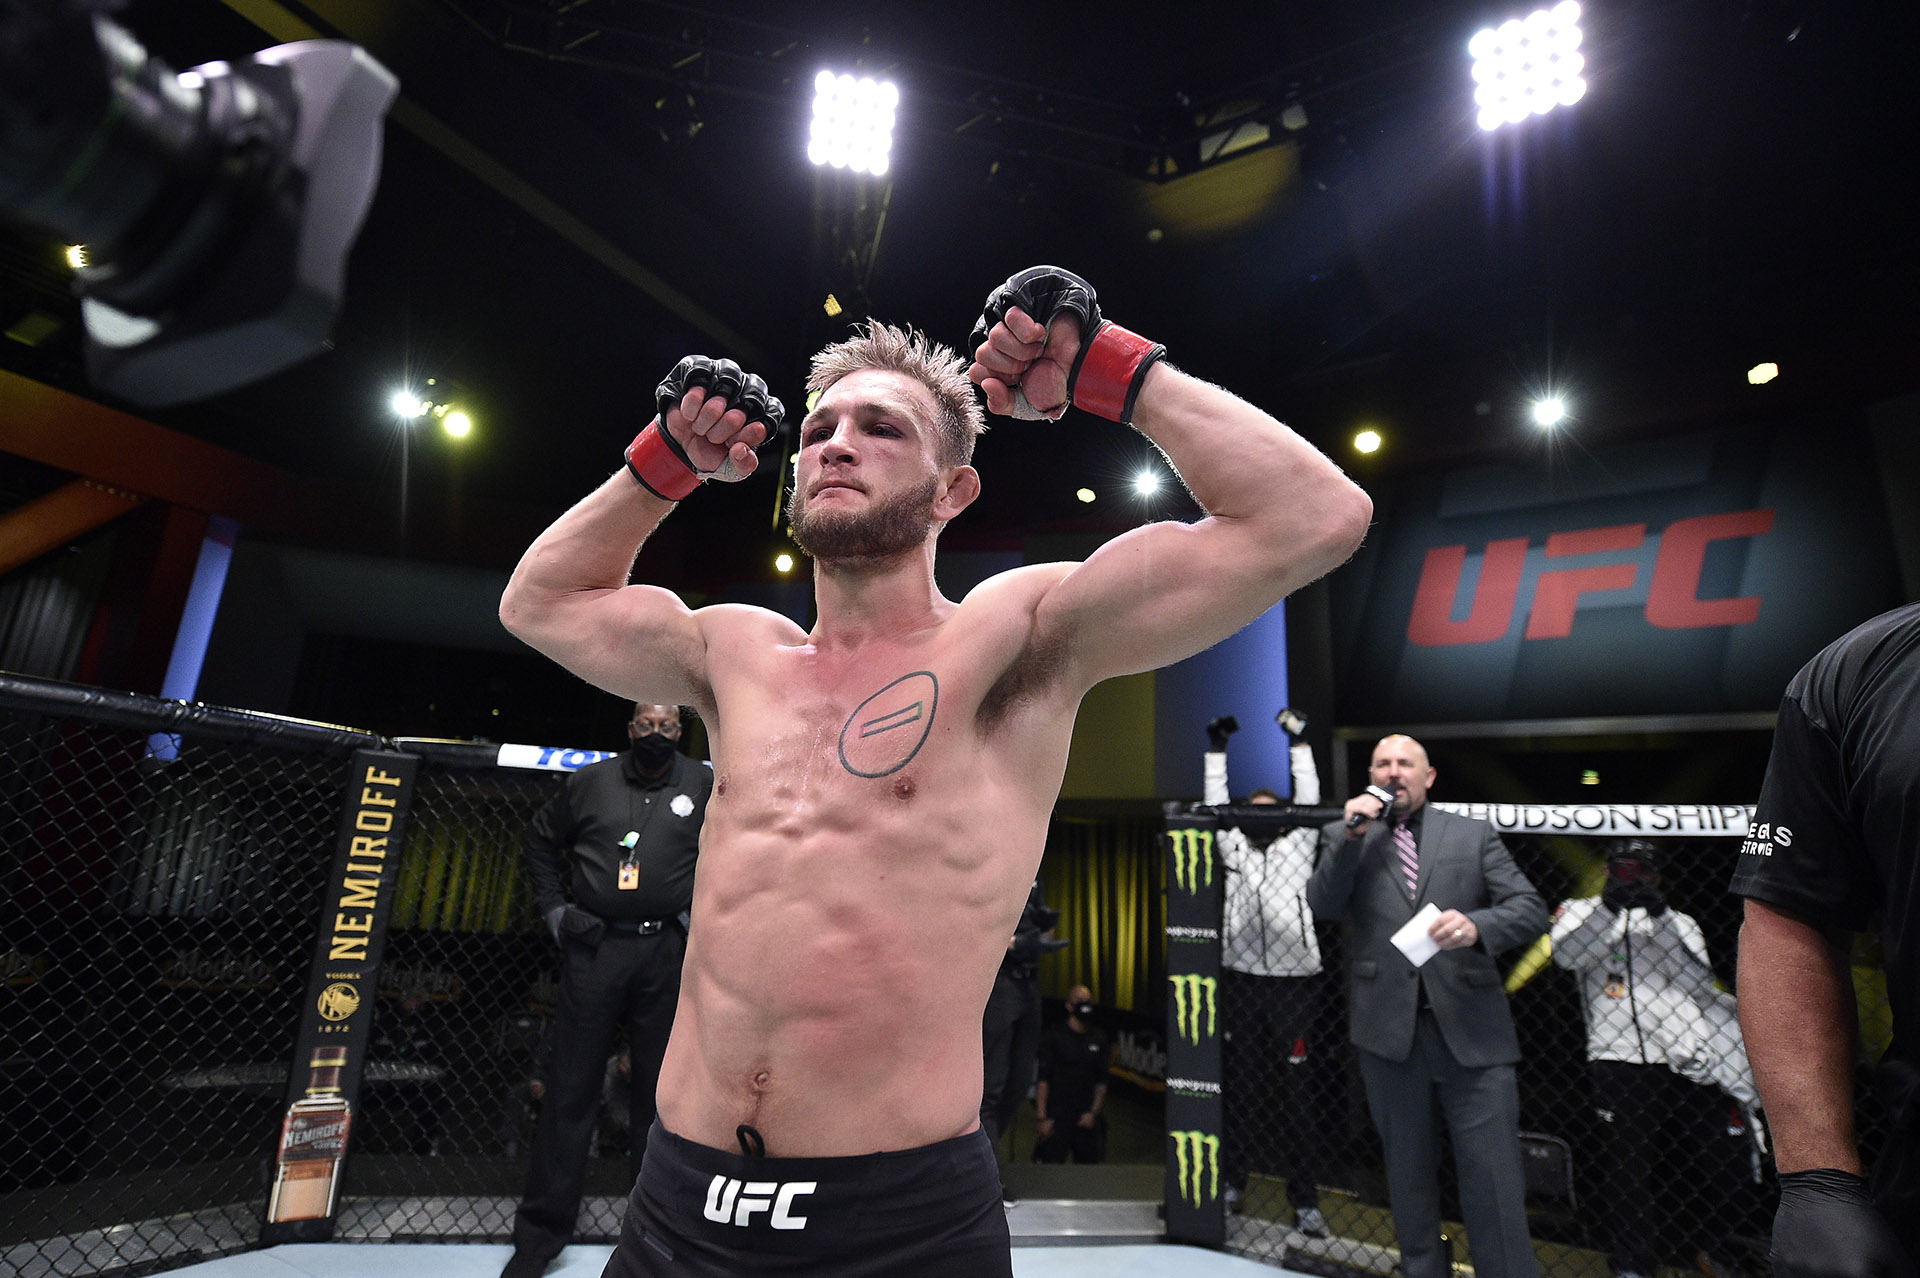 Jonathan Pearce reacts after defeating Kai Kamaka in their featherweight bout during the UFC Fight Night at UFC APEX on November 28, 2020 in Las Vegas, Nevada. (Photo by Chris Unger/Zuffa LLC)